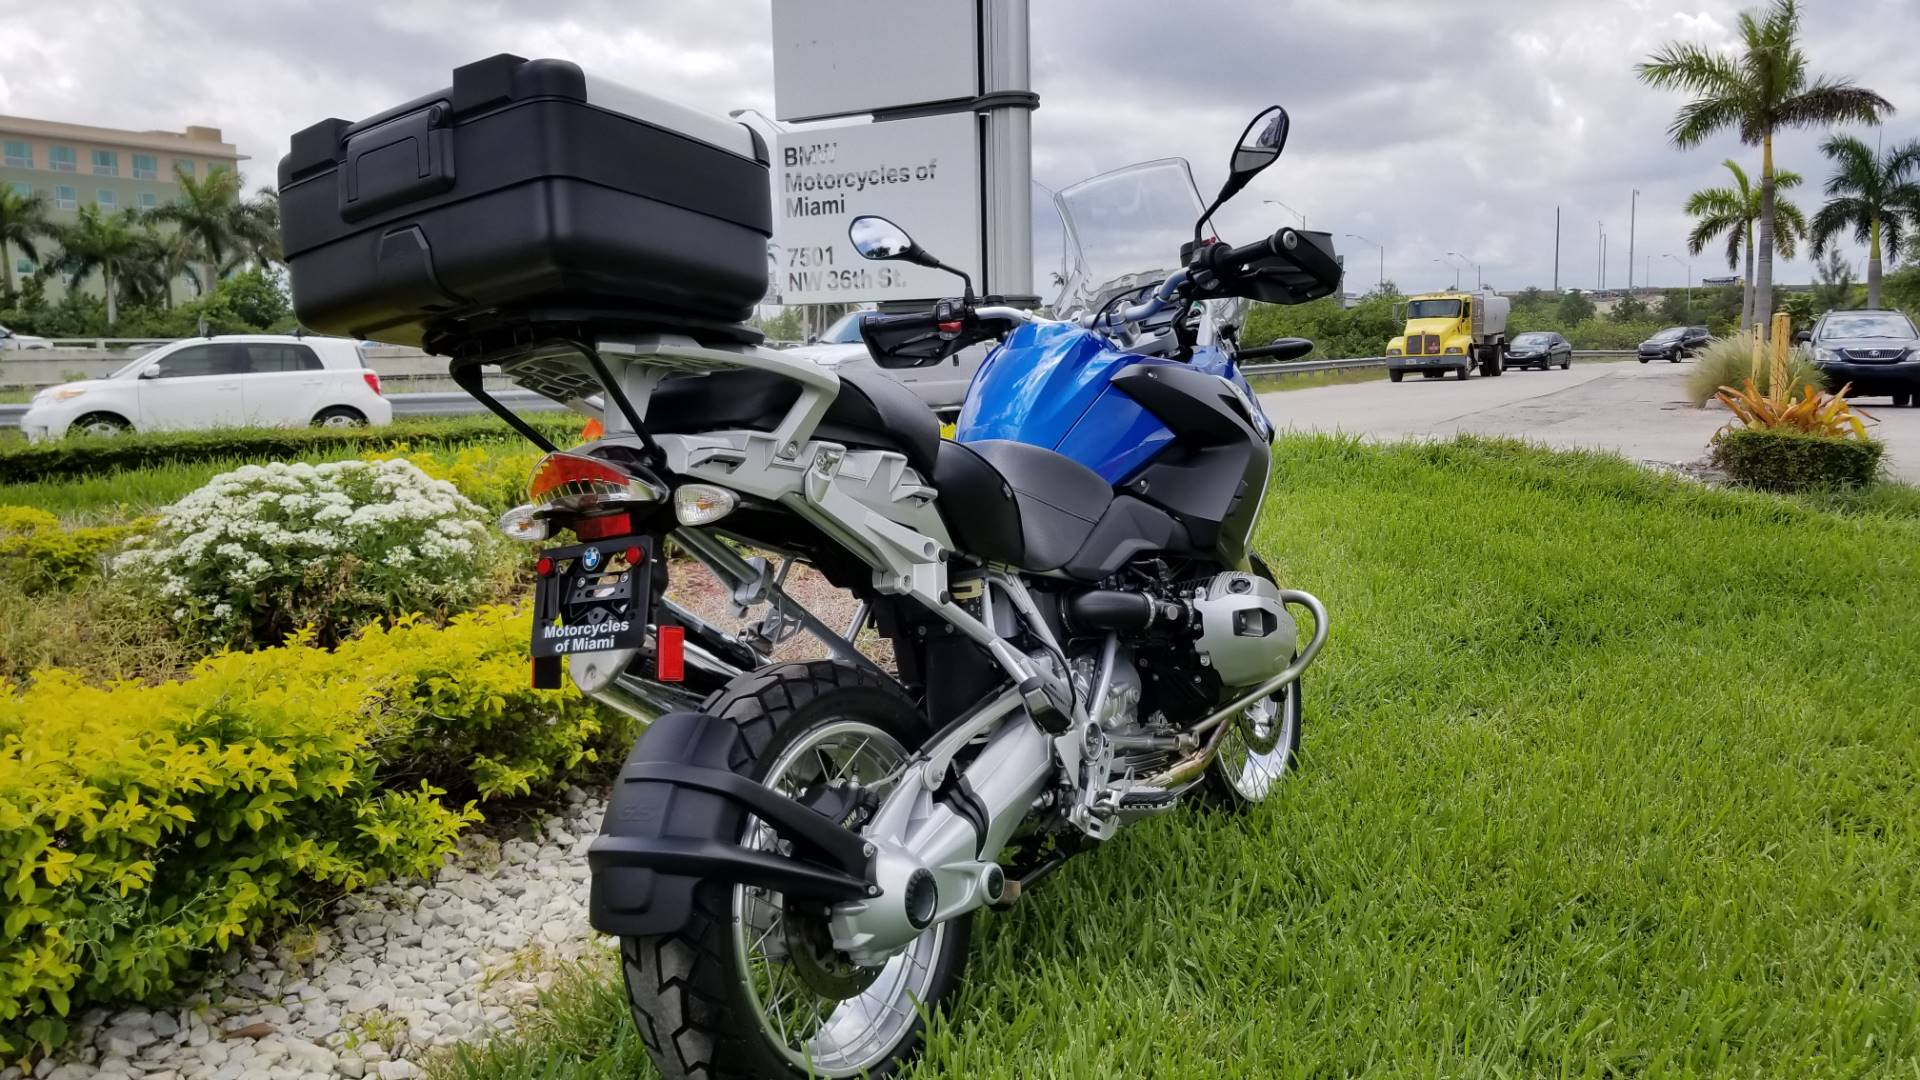 Used 2012 BMW R 1200 GS For Sale, BMW R 1200GS For Sale, BMW Motorcycle r1200GS, BMW R1200GS, BMW, GS, DUAL. - Photo 23